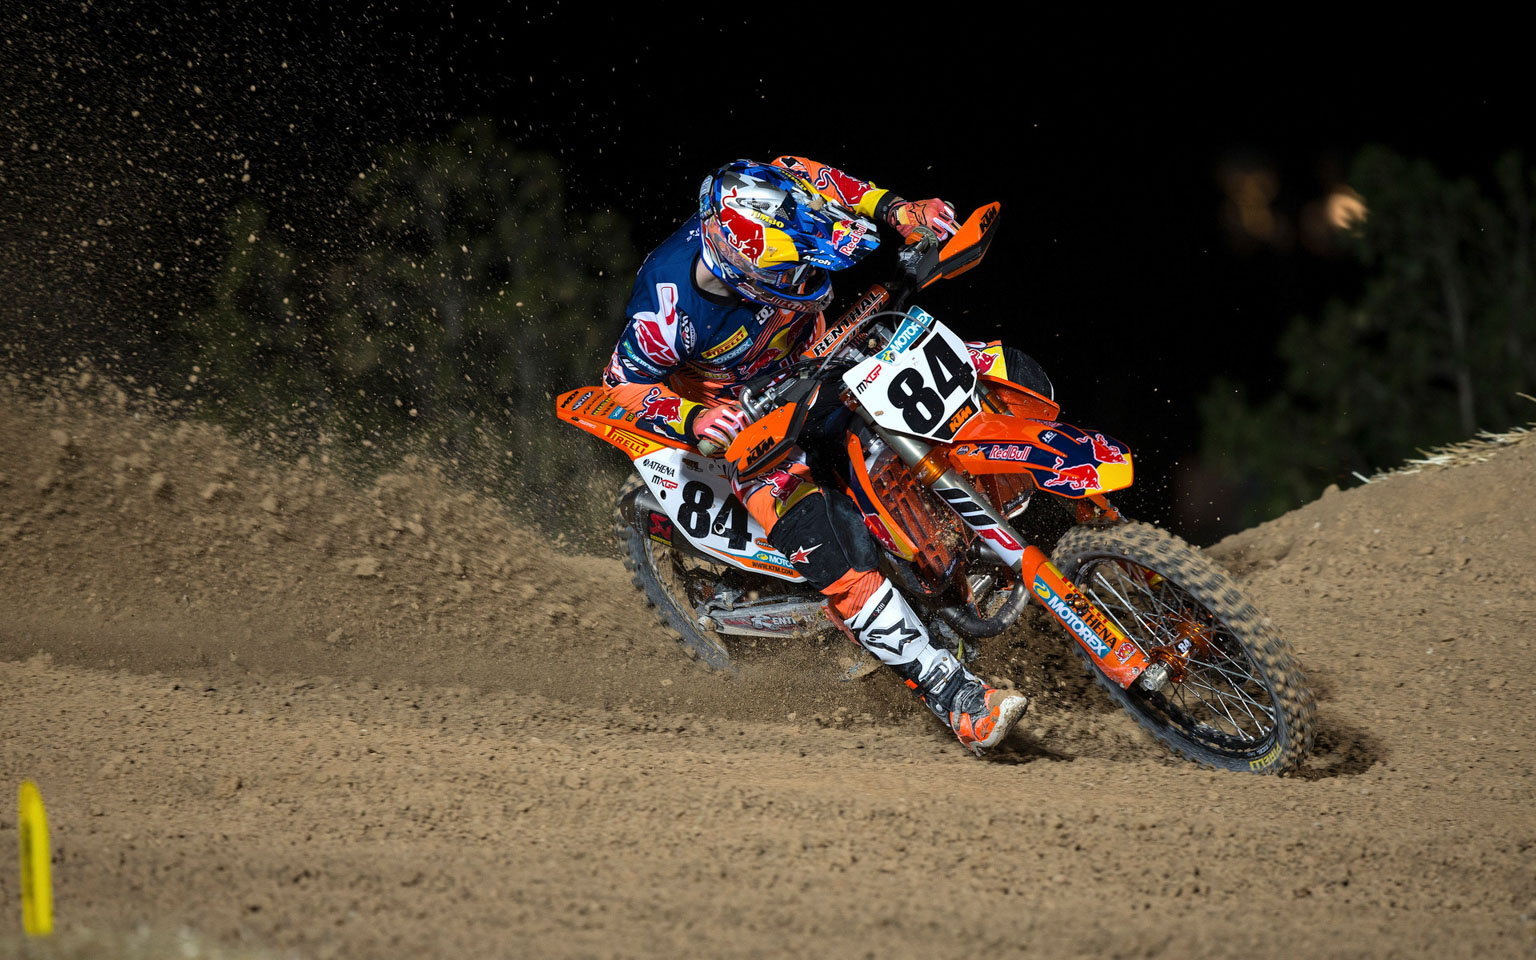 Herlings rode in pain in the opening Qatar GP